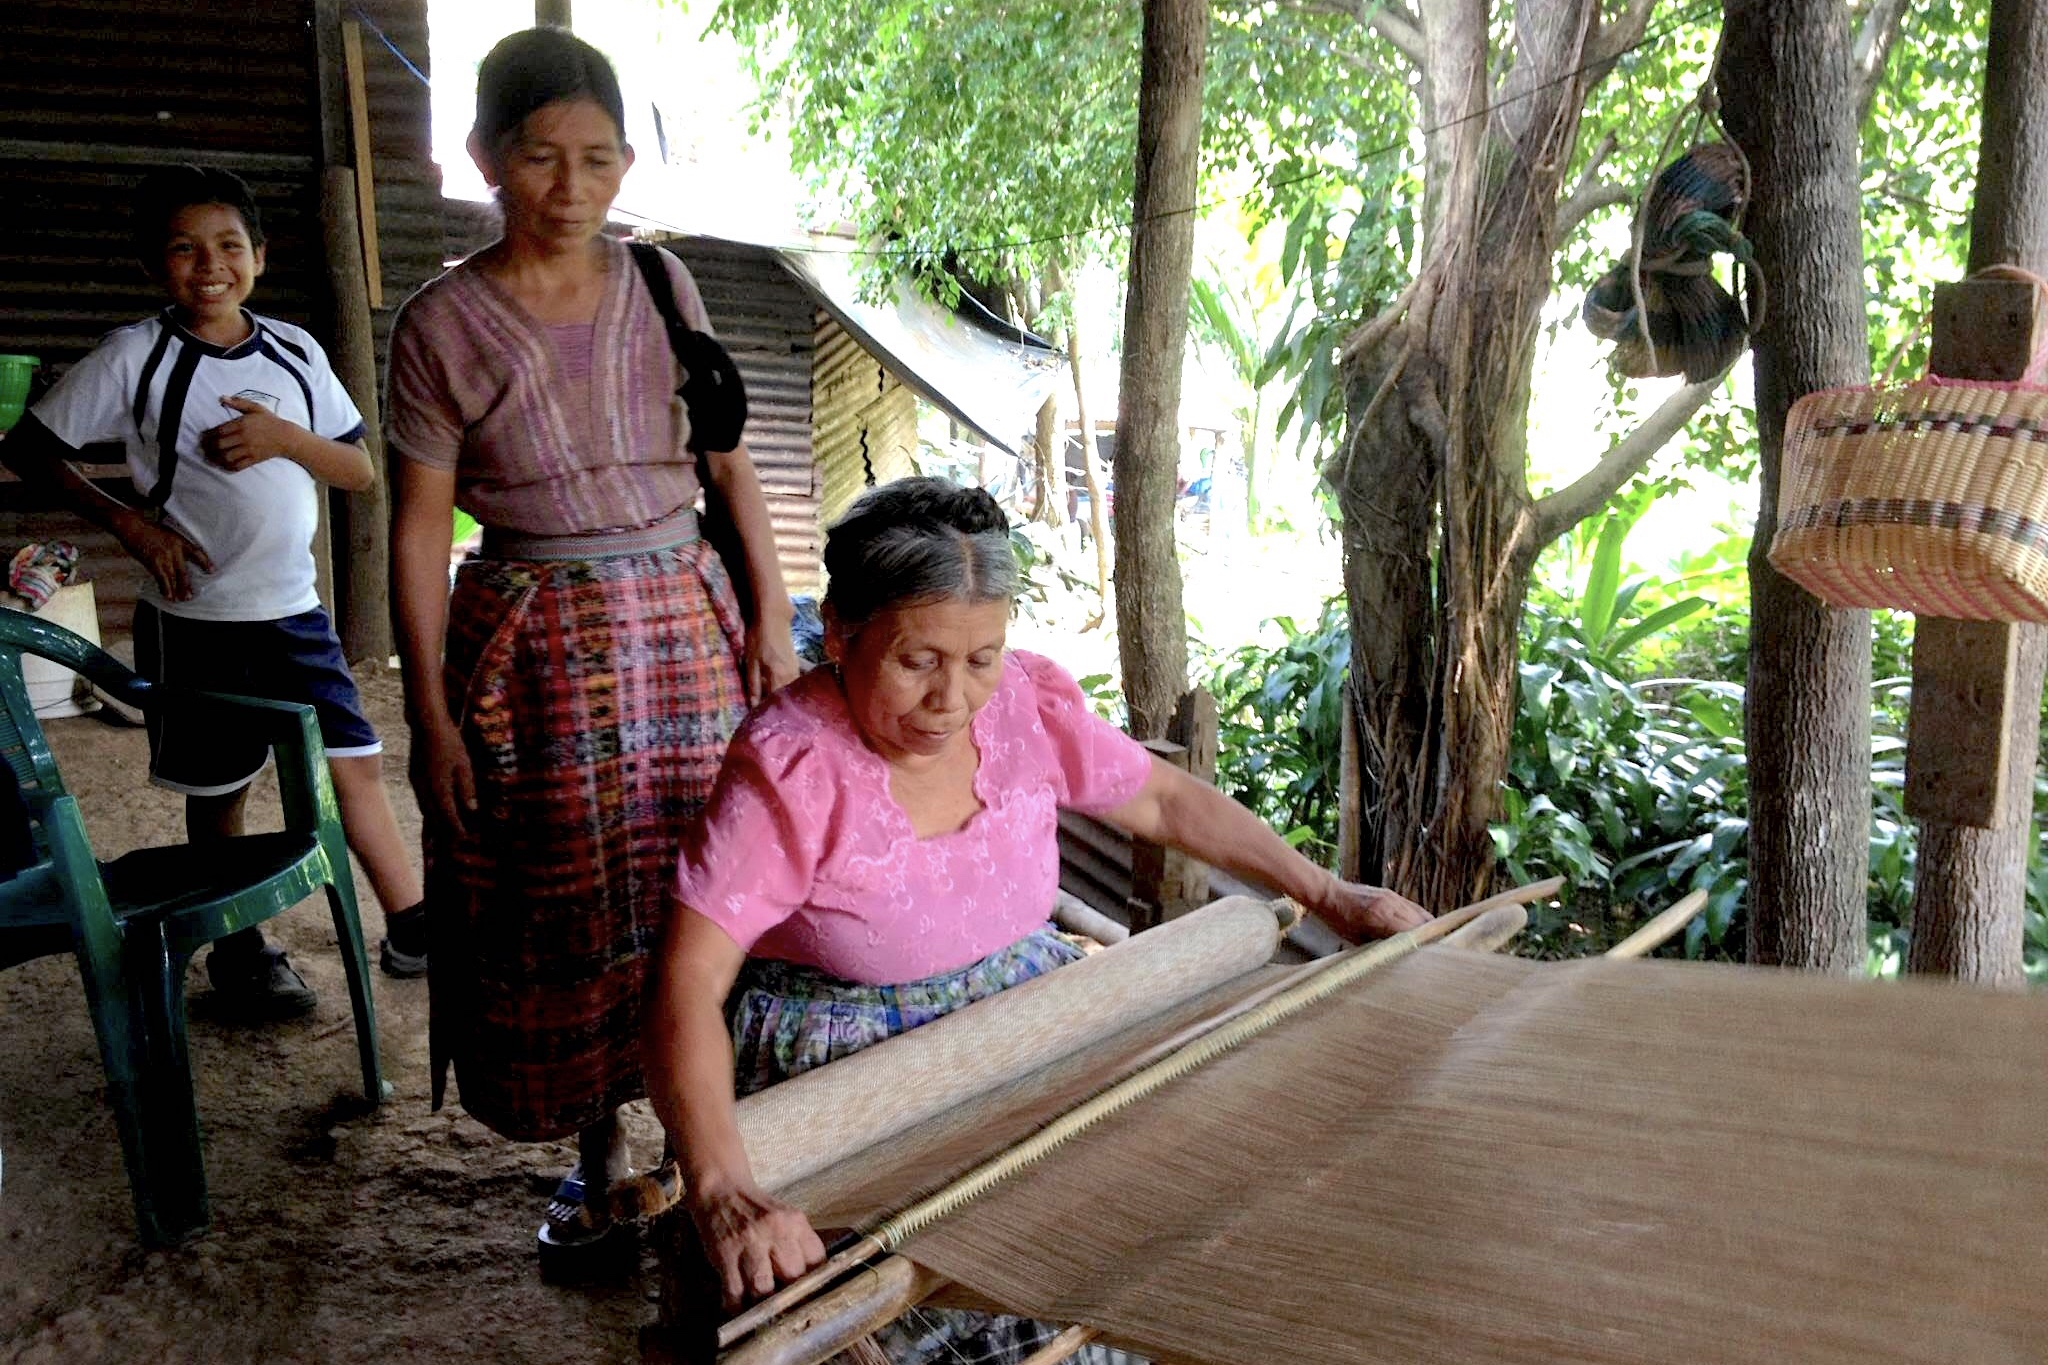 Indigenous - Social Fabric is woven in the indigenous tradition, allowing Guatemalan weavers to preserve their heritage trade. Read more about the production process here.